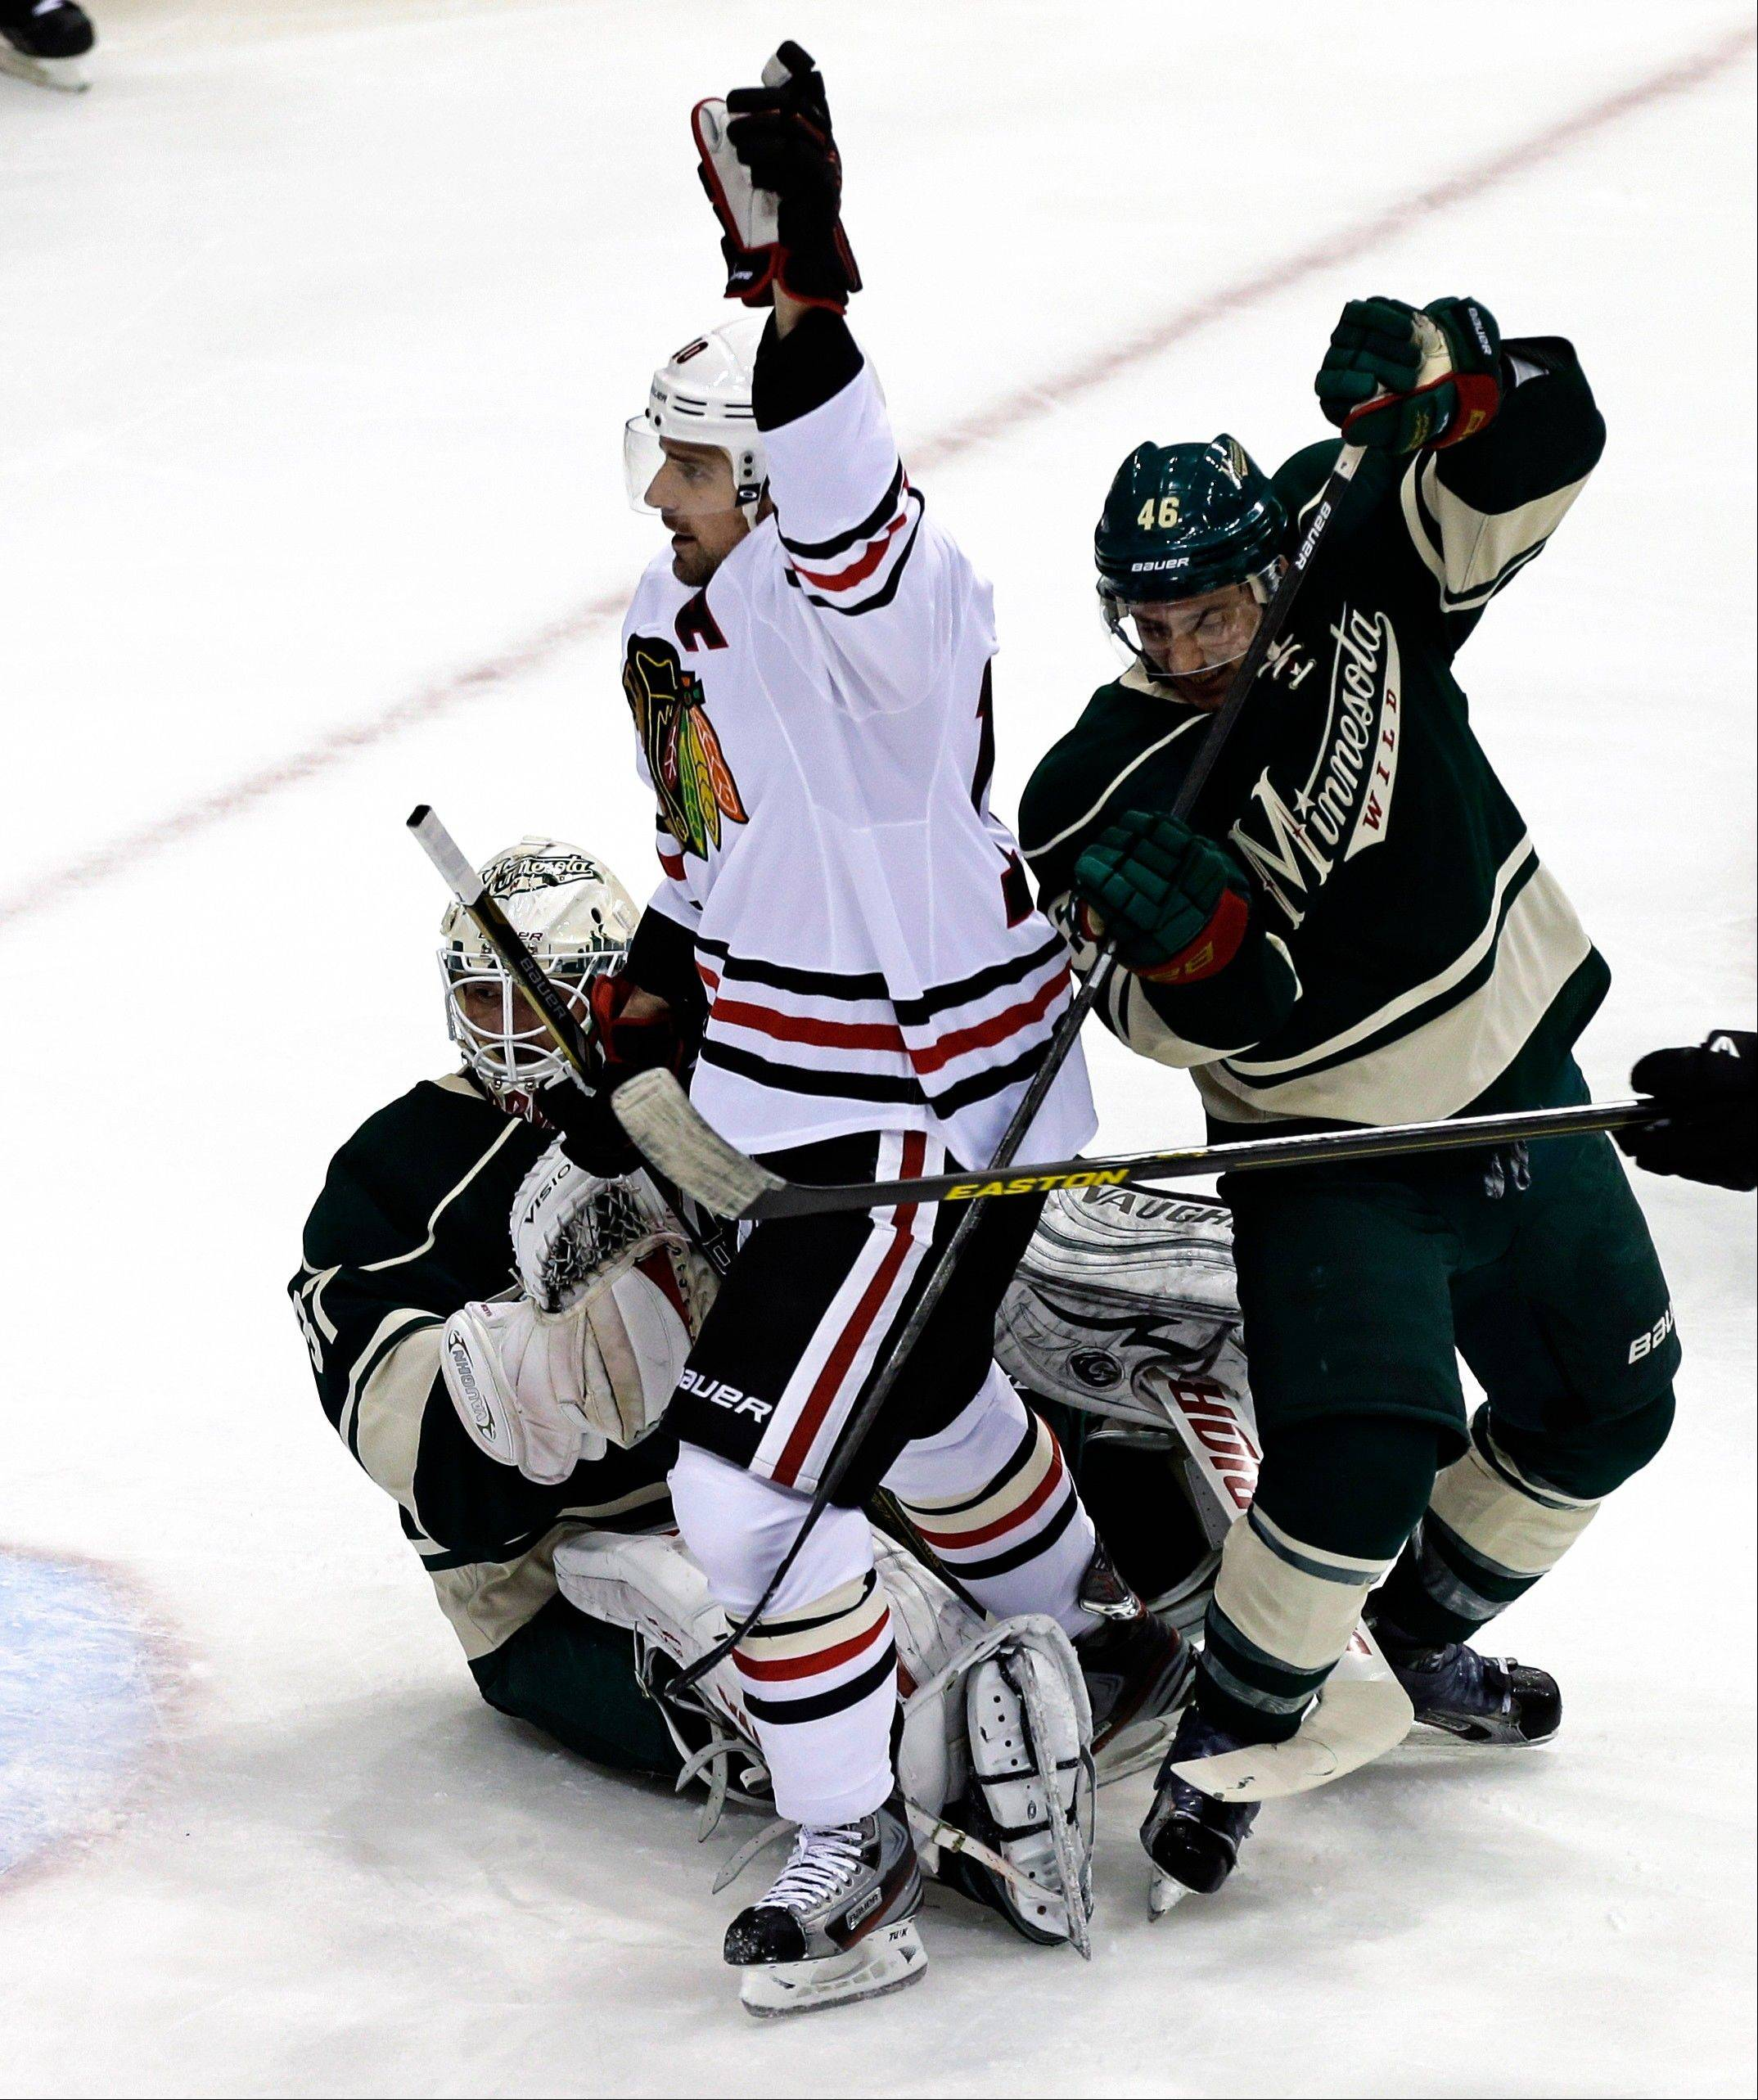 Chicago Blackhawks' Patrick Sharp, center, celebrates his goal off Minnesota Wild goalie Josh Harding, left, in the first period of Game 4 of an NHL hockey Stanley Cup playoff series, Tuesday, May 7, 2013 in St. Paul, Minn. At right is Wild's Jared Spurgeon (AP Photo/Jim Mone)